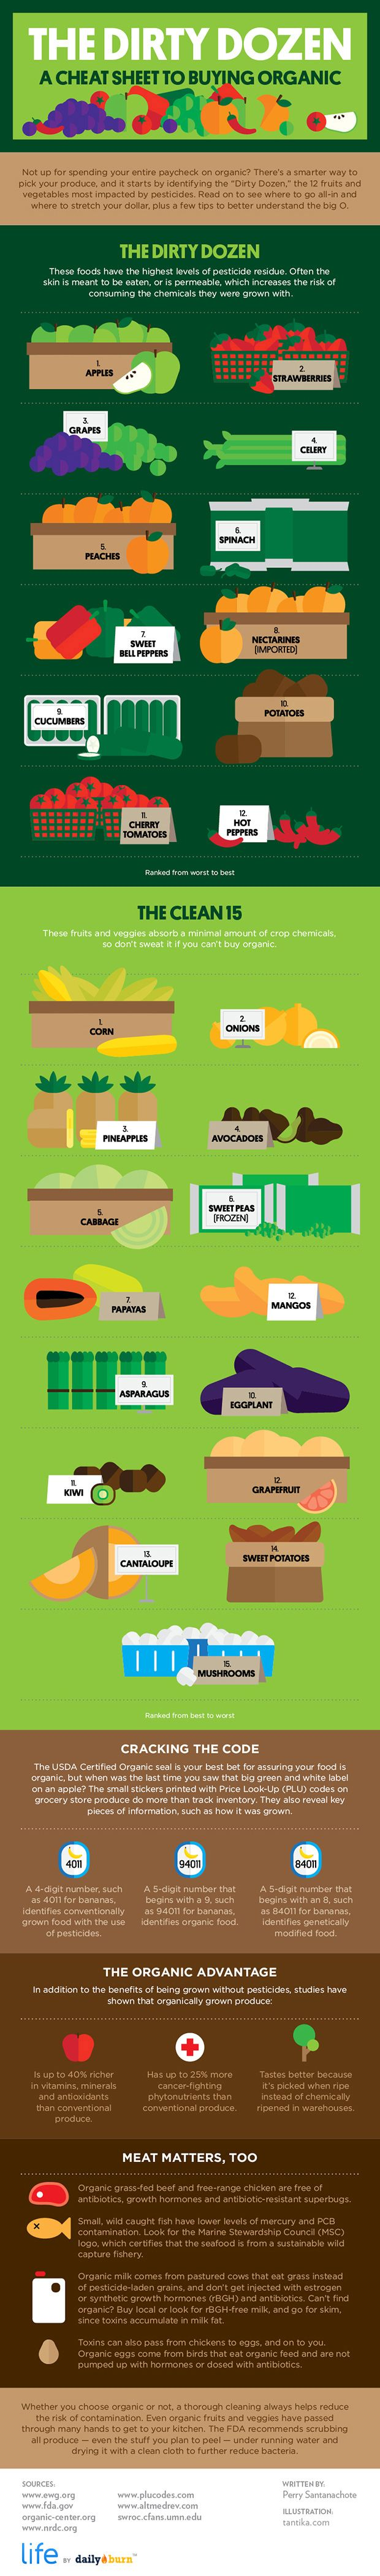 The Dirty Dozen and Clean Fifteen What to Buy Organic [INFOGRAPHIC] by the DailyBurn